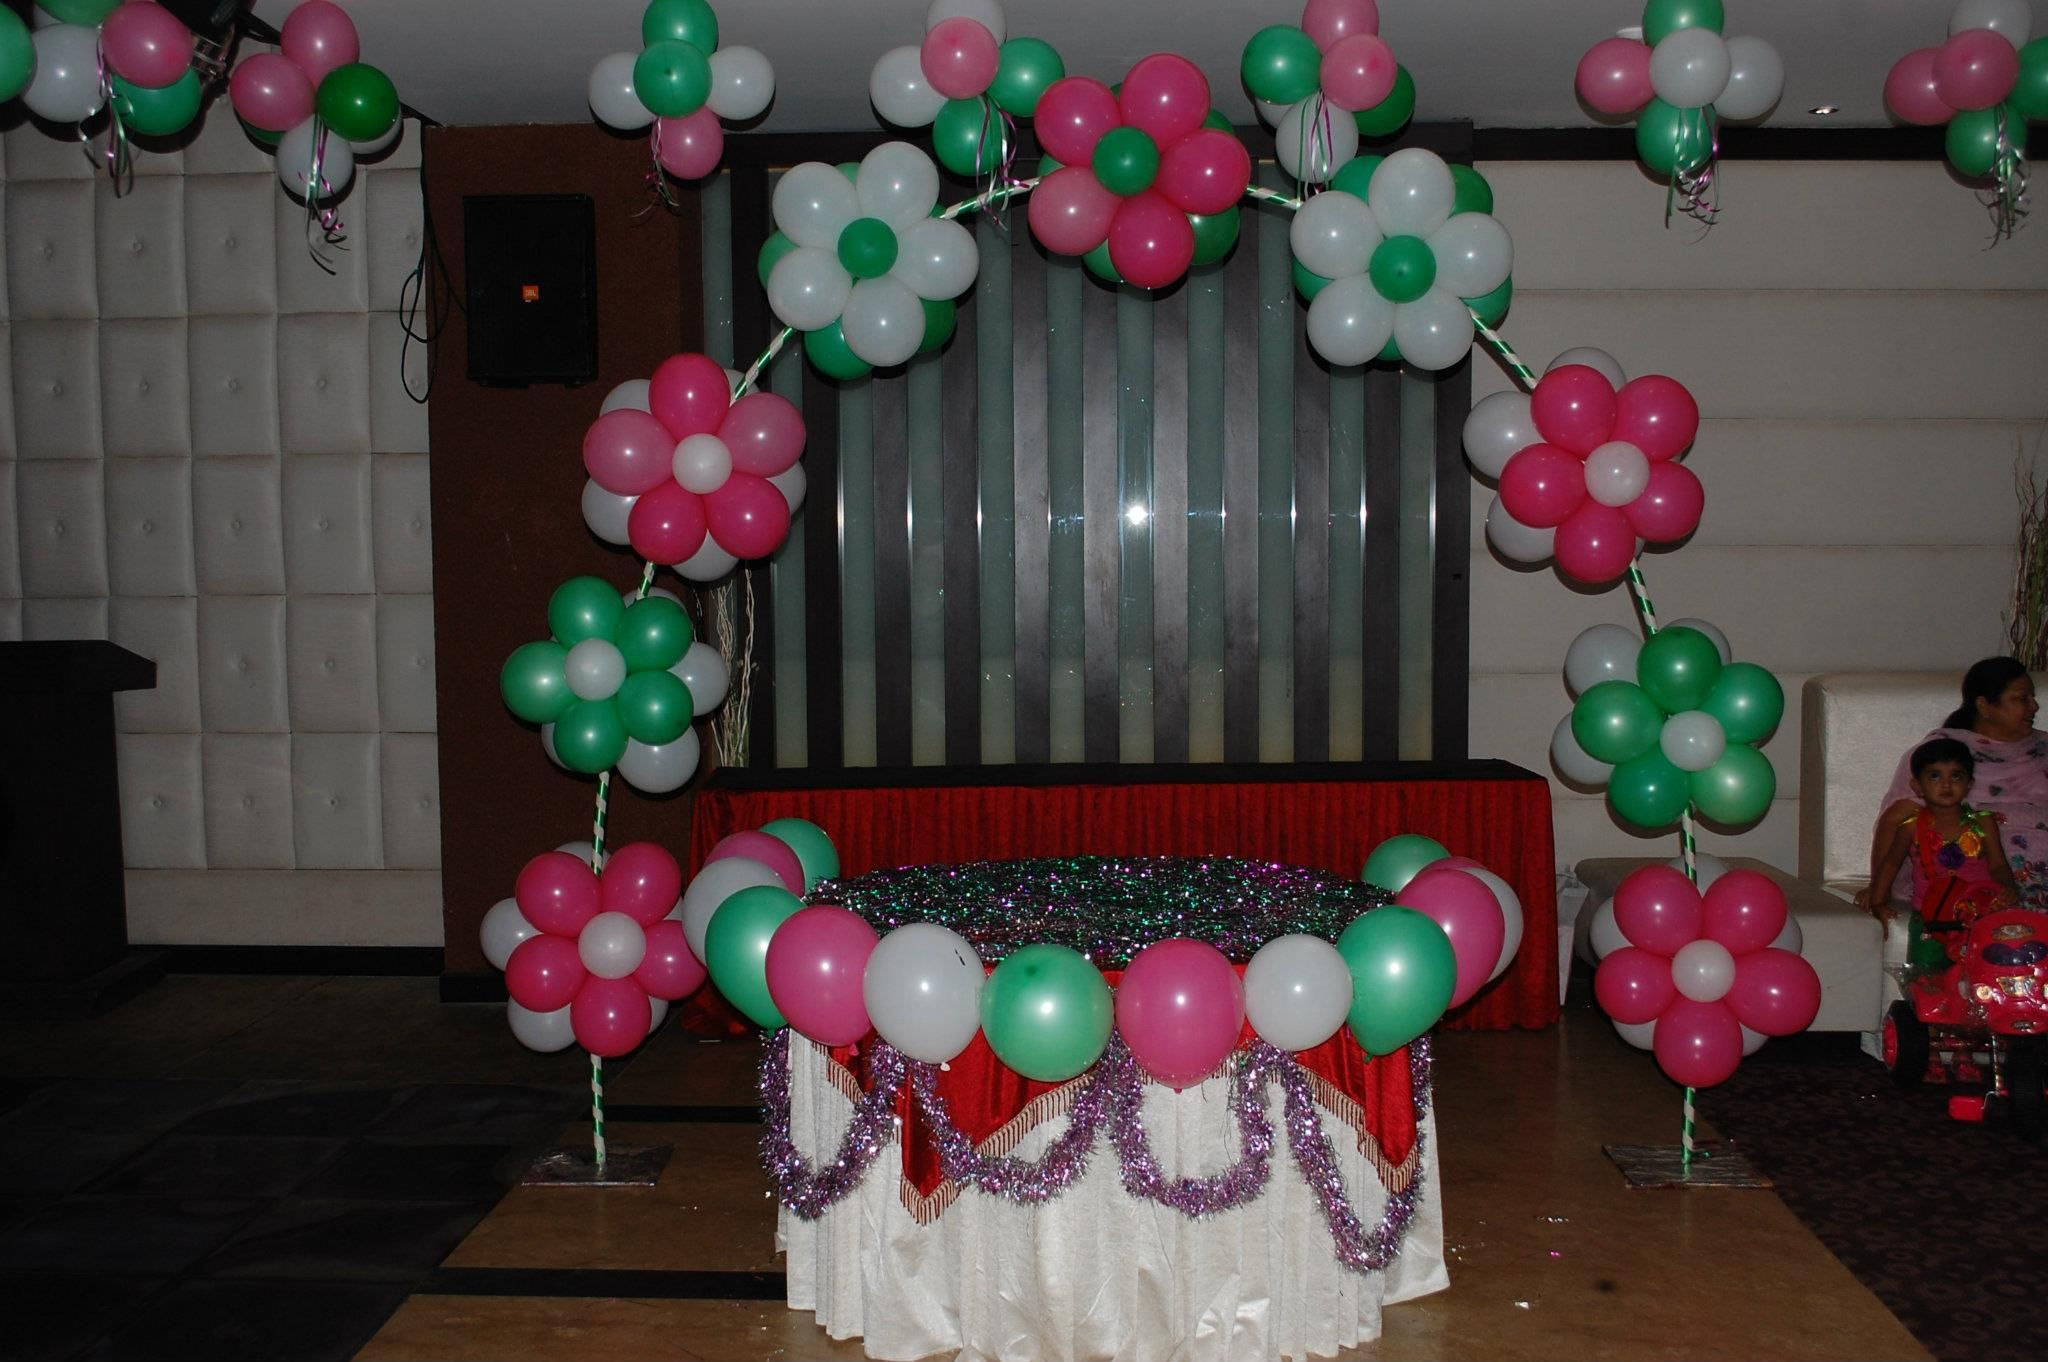 Awesome balloon decoration globoflexia pinterest arcos - Lozano decoraciones ...